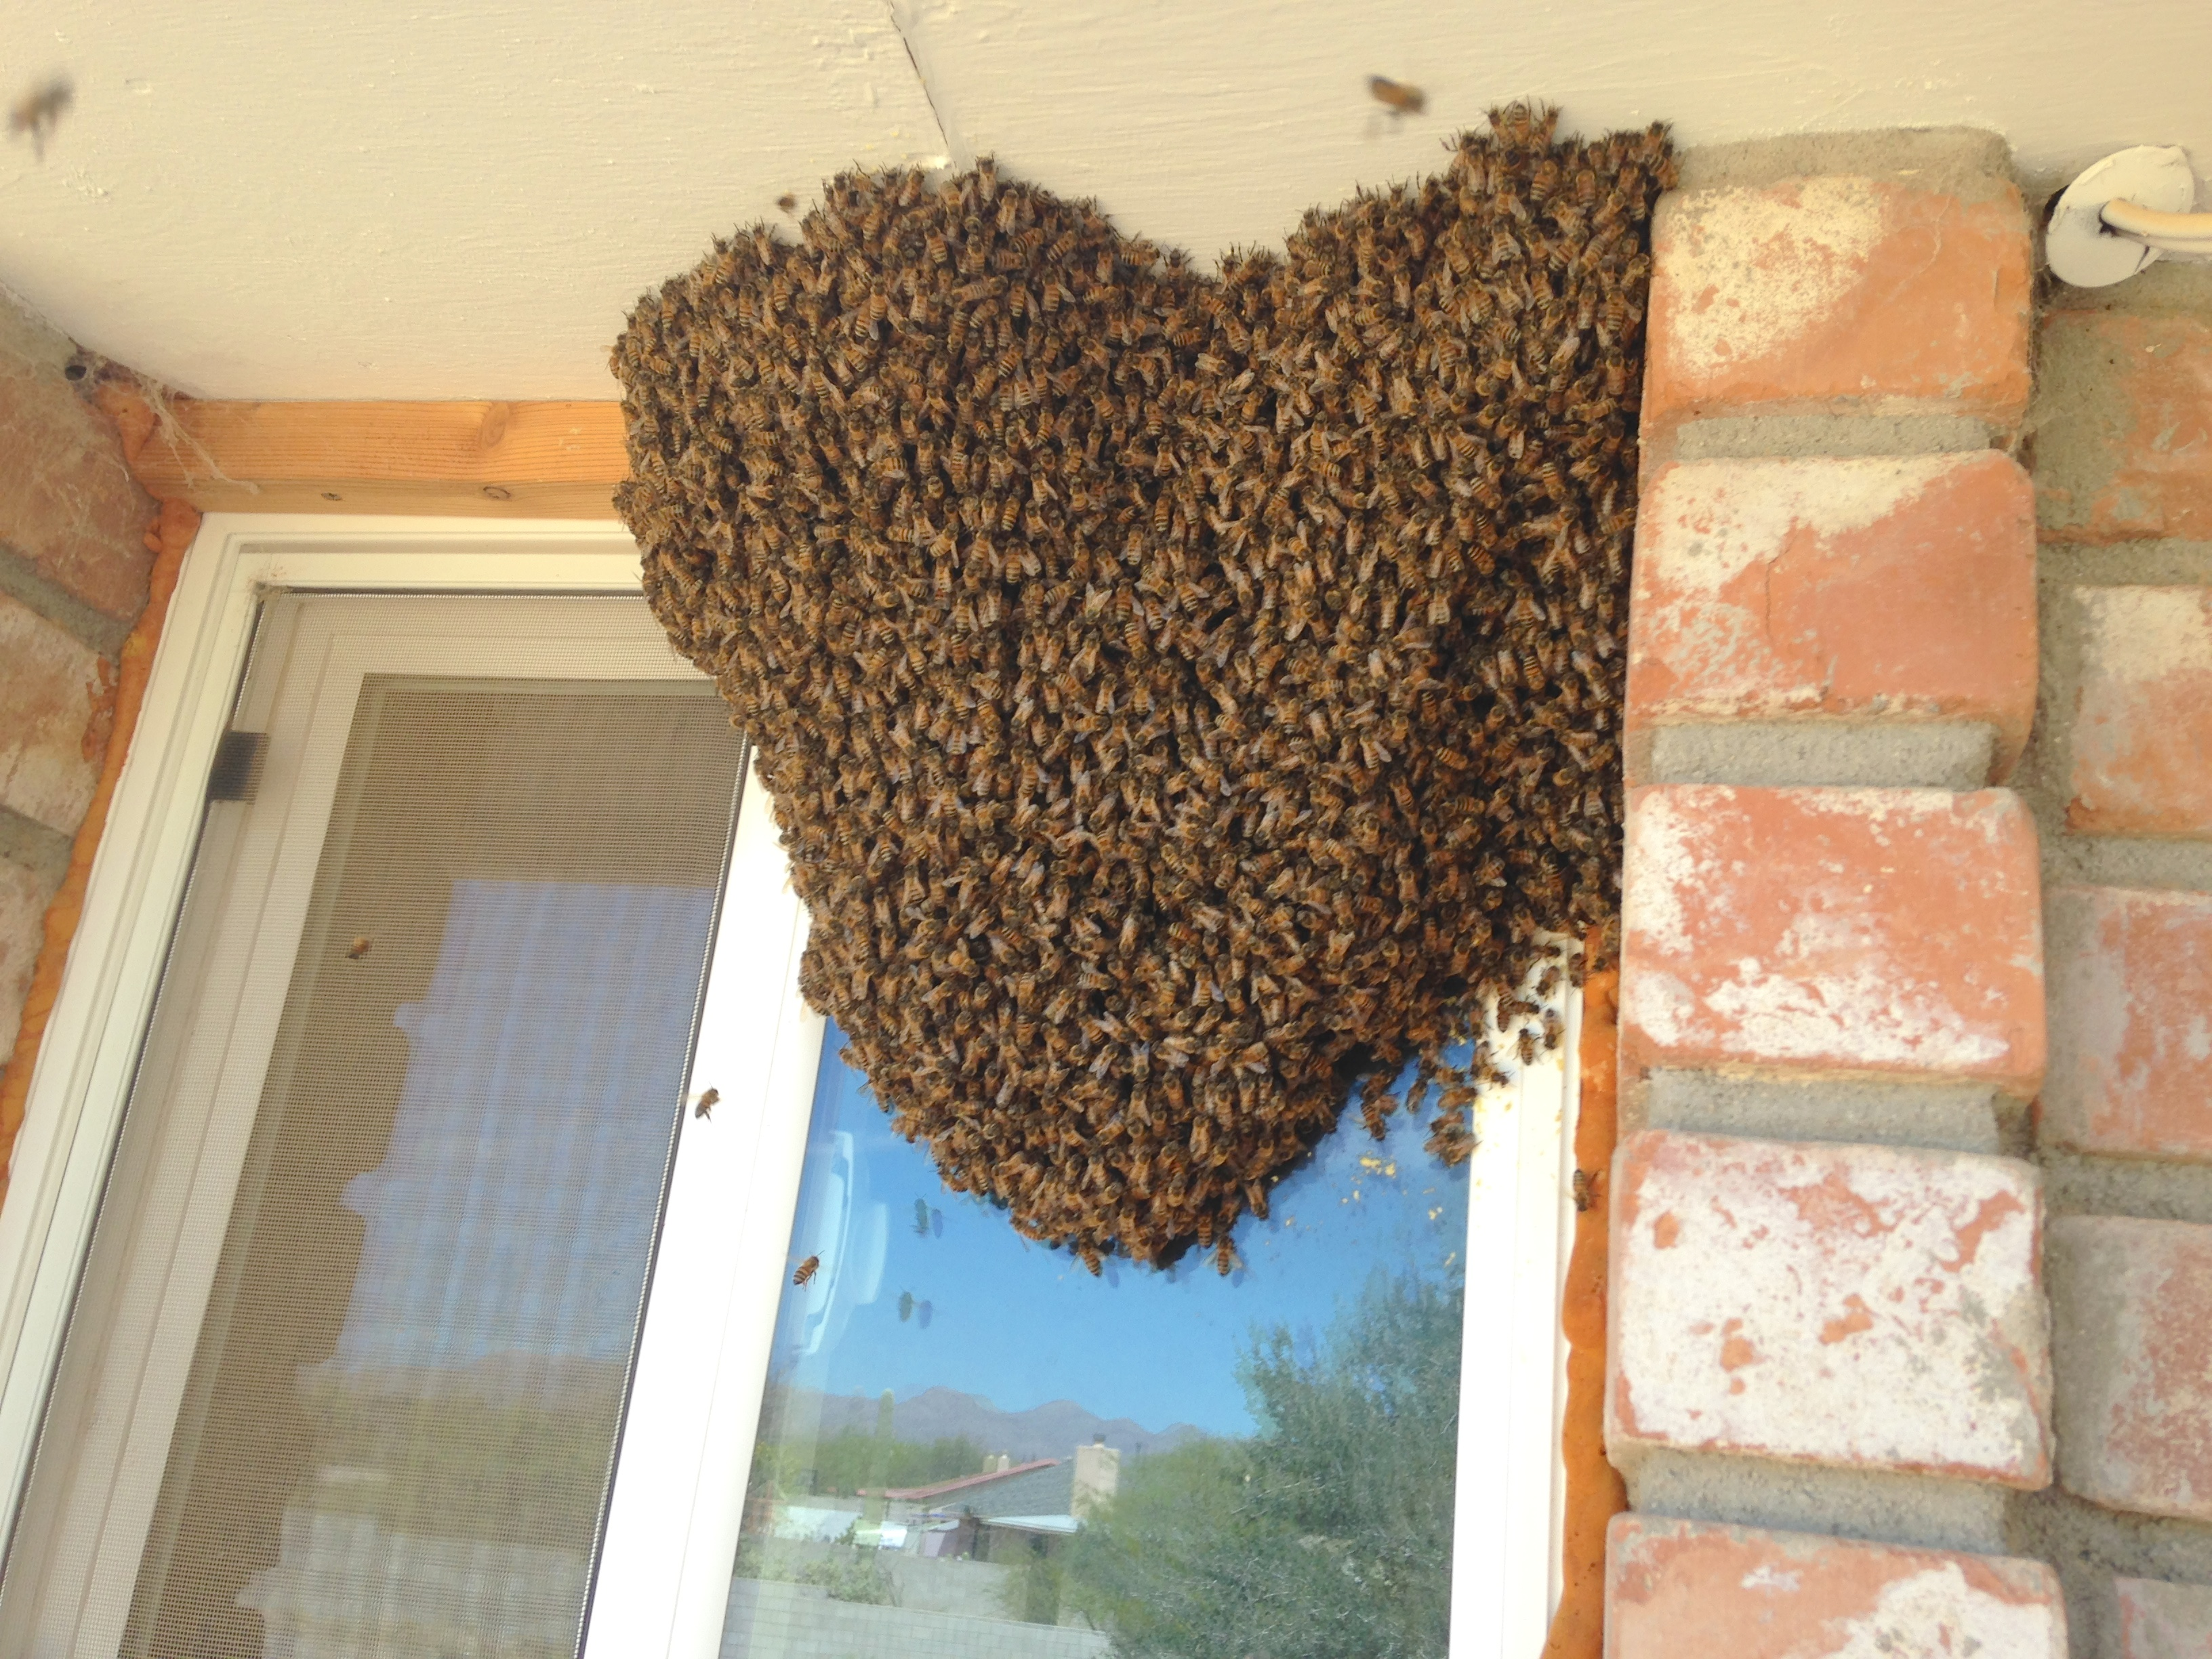 Window swarm